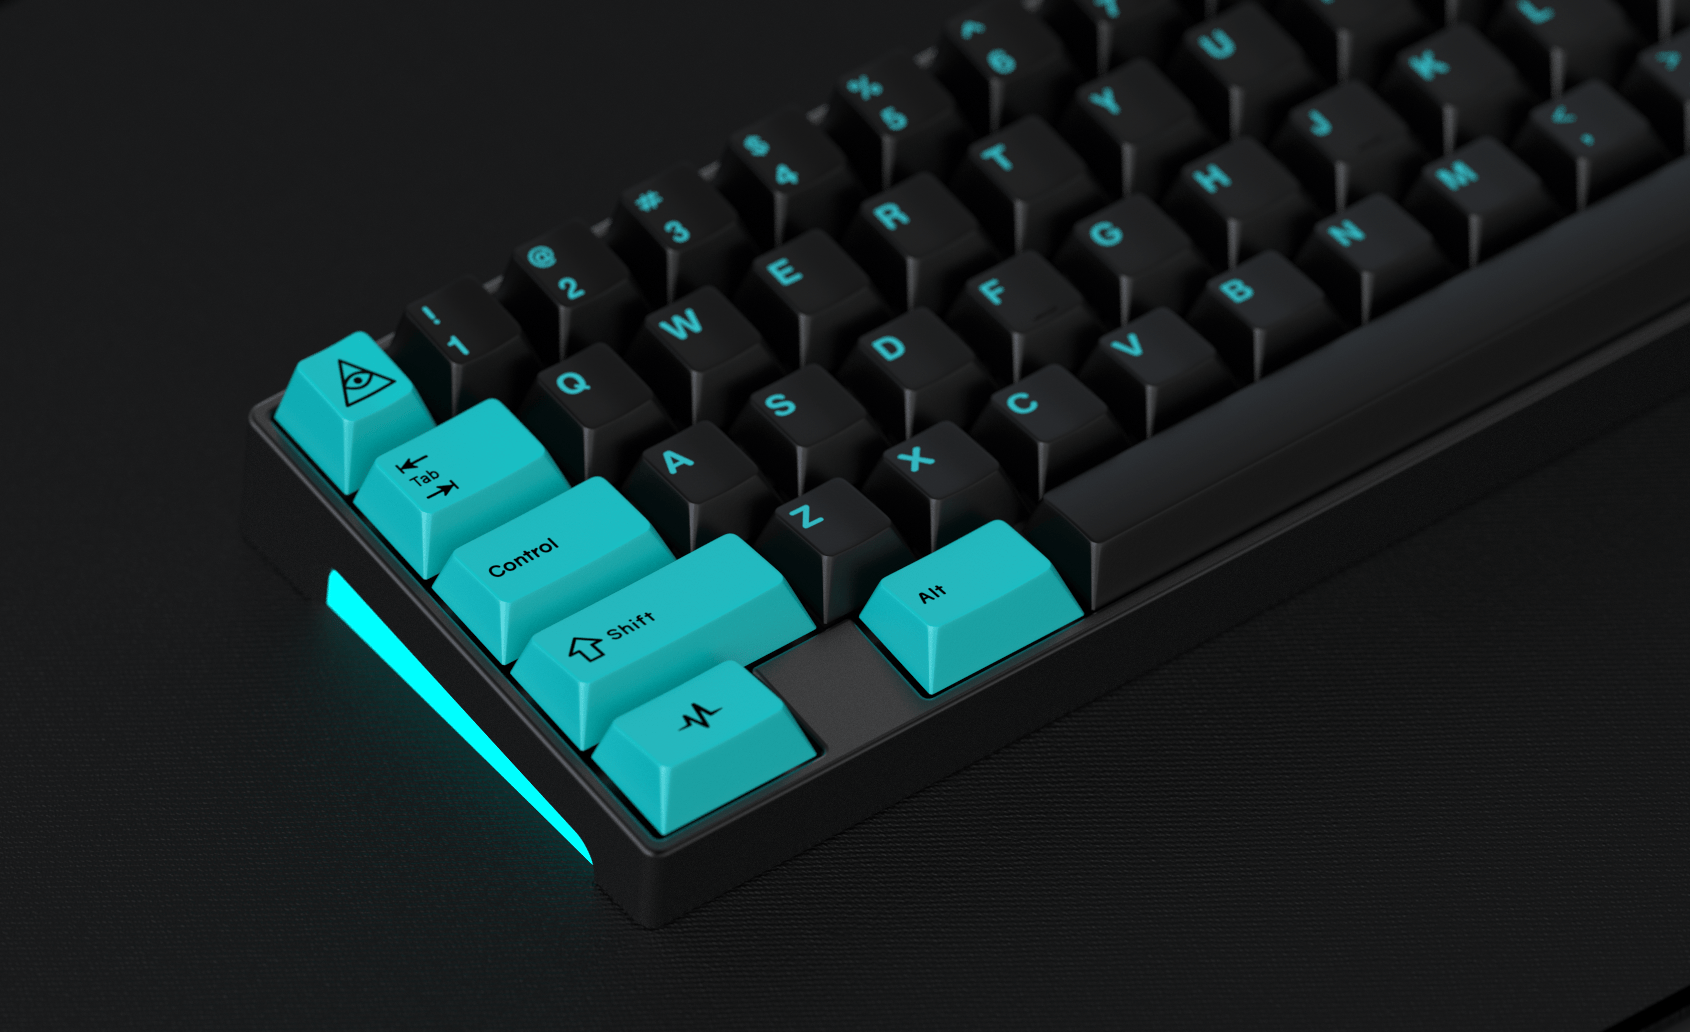 pulse_gmk_mt60.png